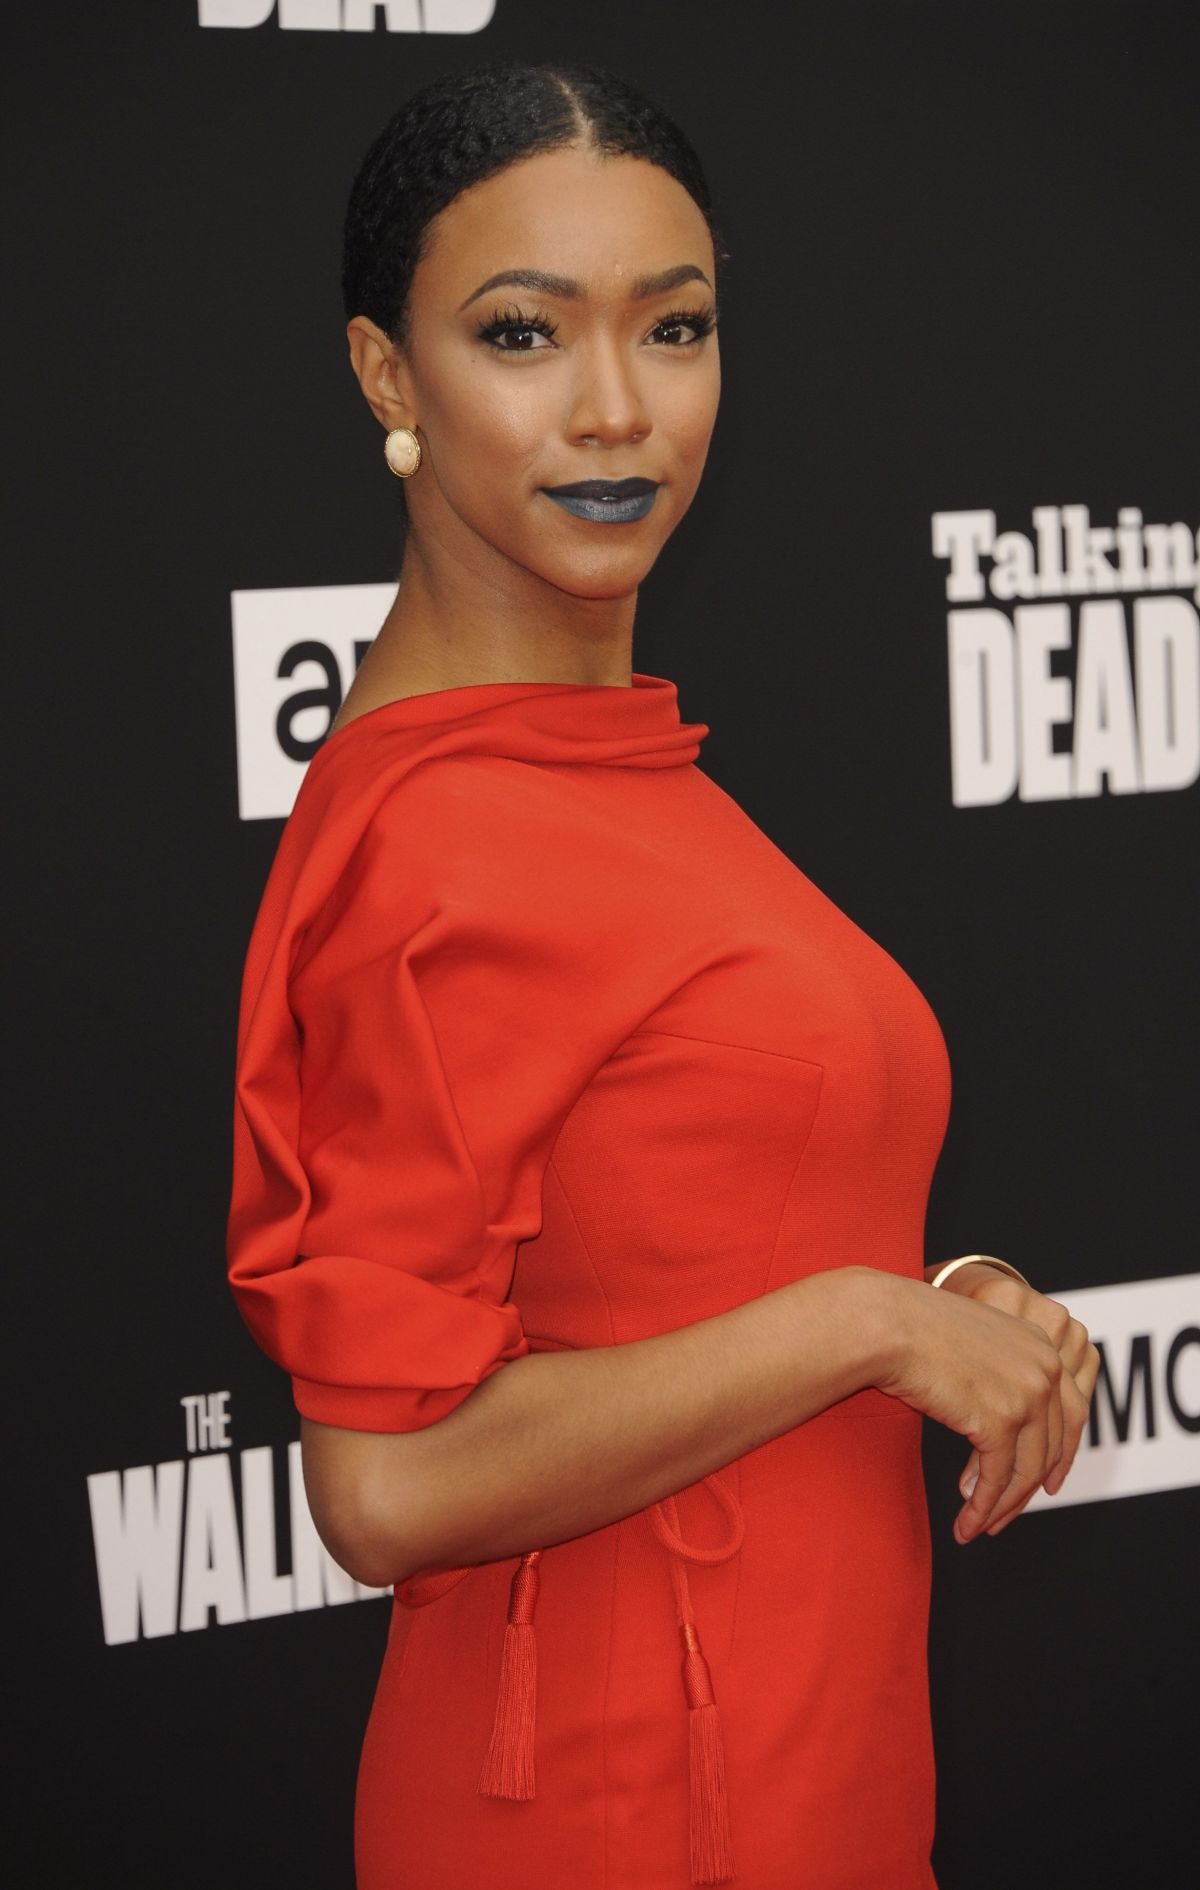 SONEQUA MARTIN GREEN at AMC Present 'Talking Dead' in Los Angeles 10/23/2016